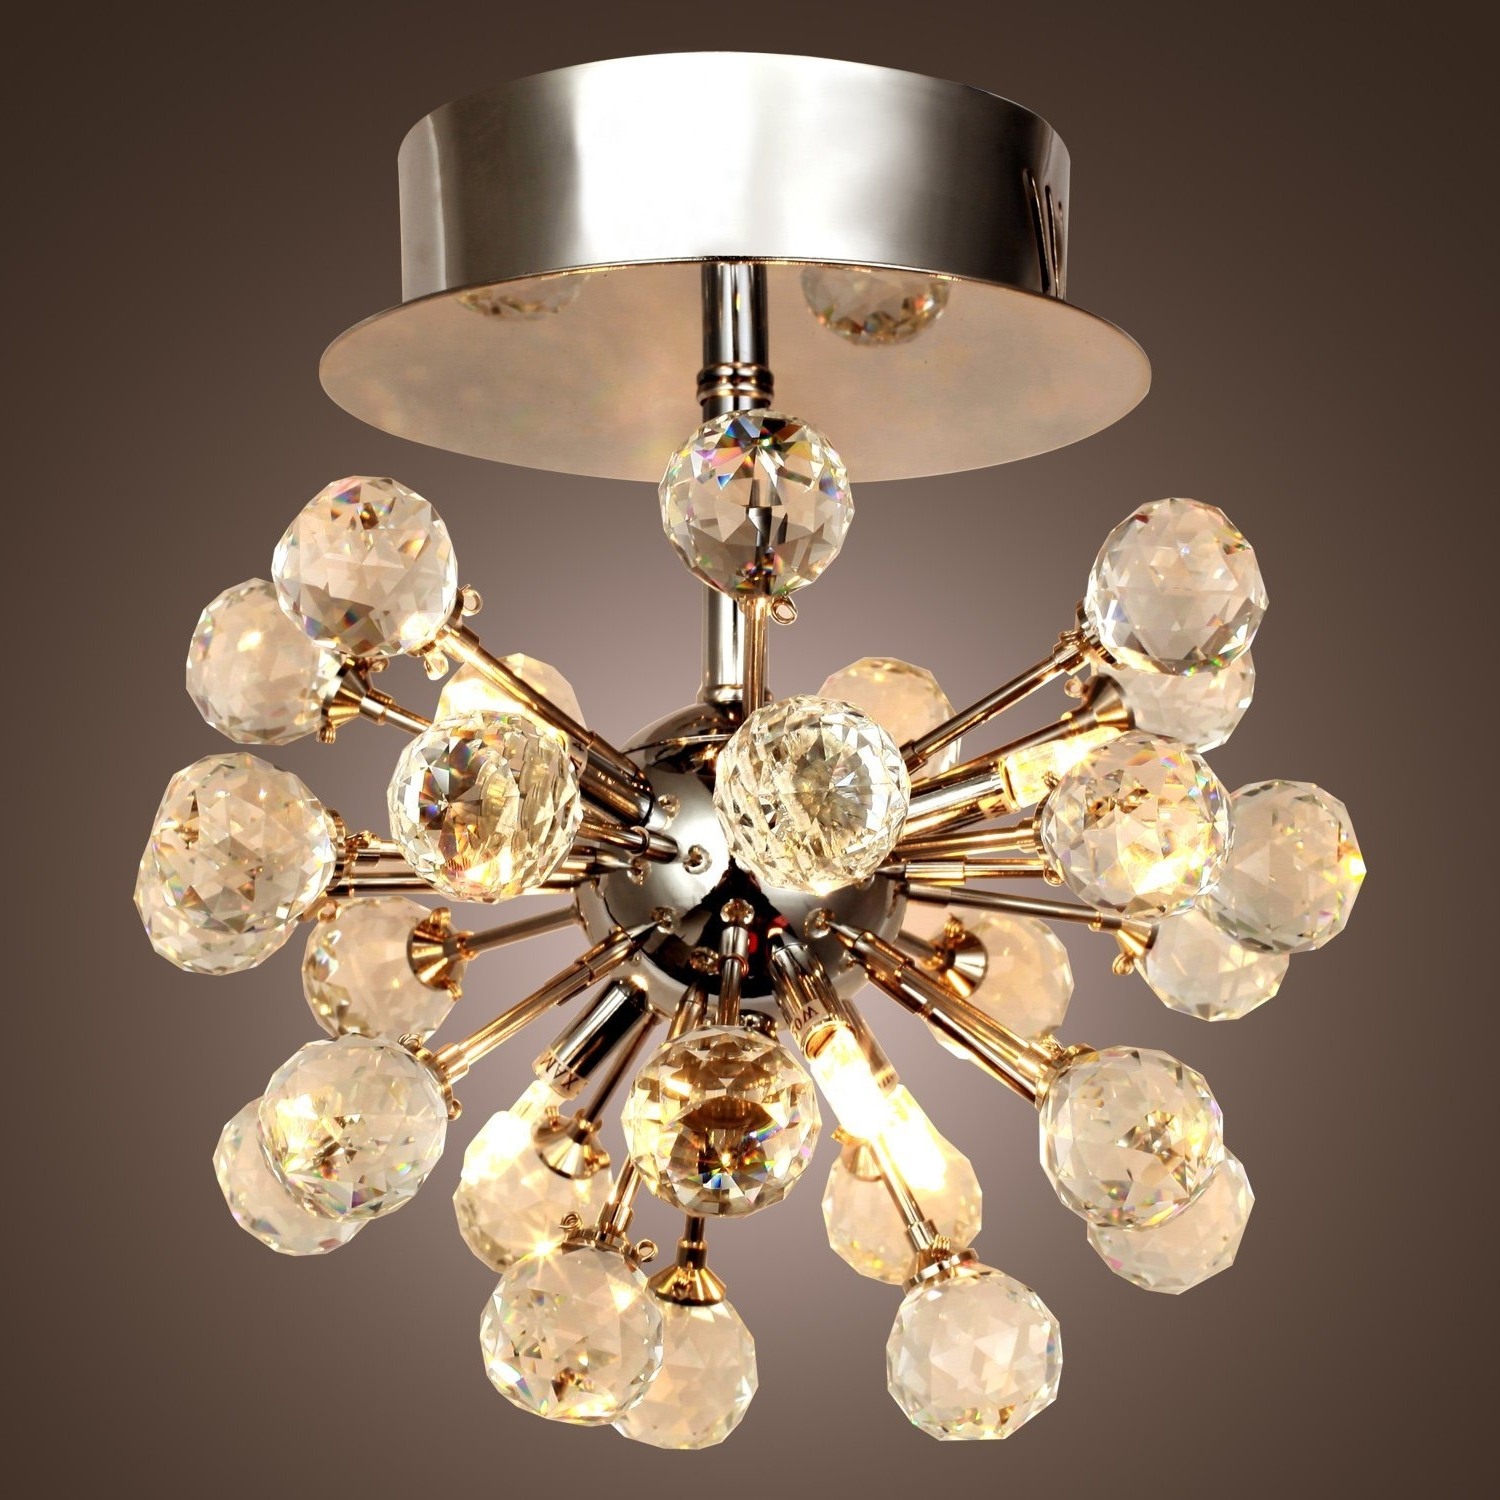 Short Chandelier Lights With Regard To Widely Used Lightinthebox Max 10W K9 Crystal Chandelier With 6 Lights In Globe (View 2 of 15)